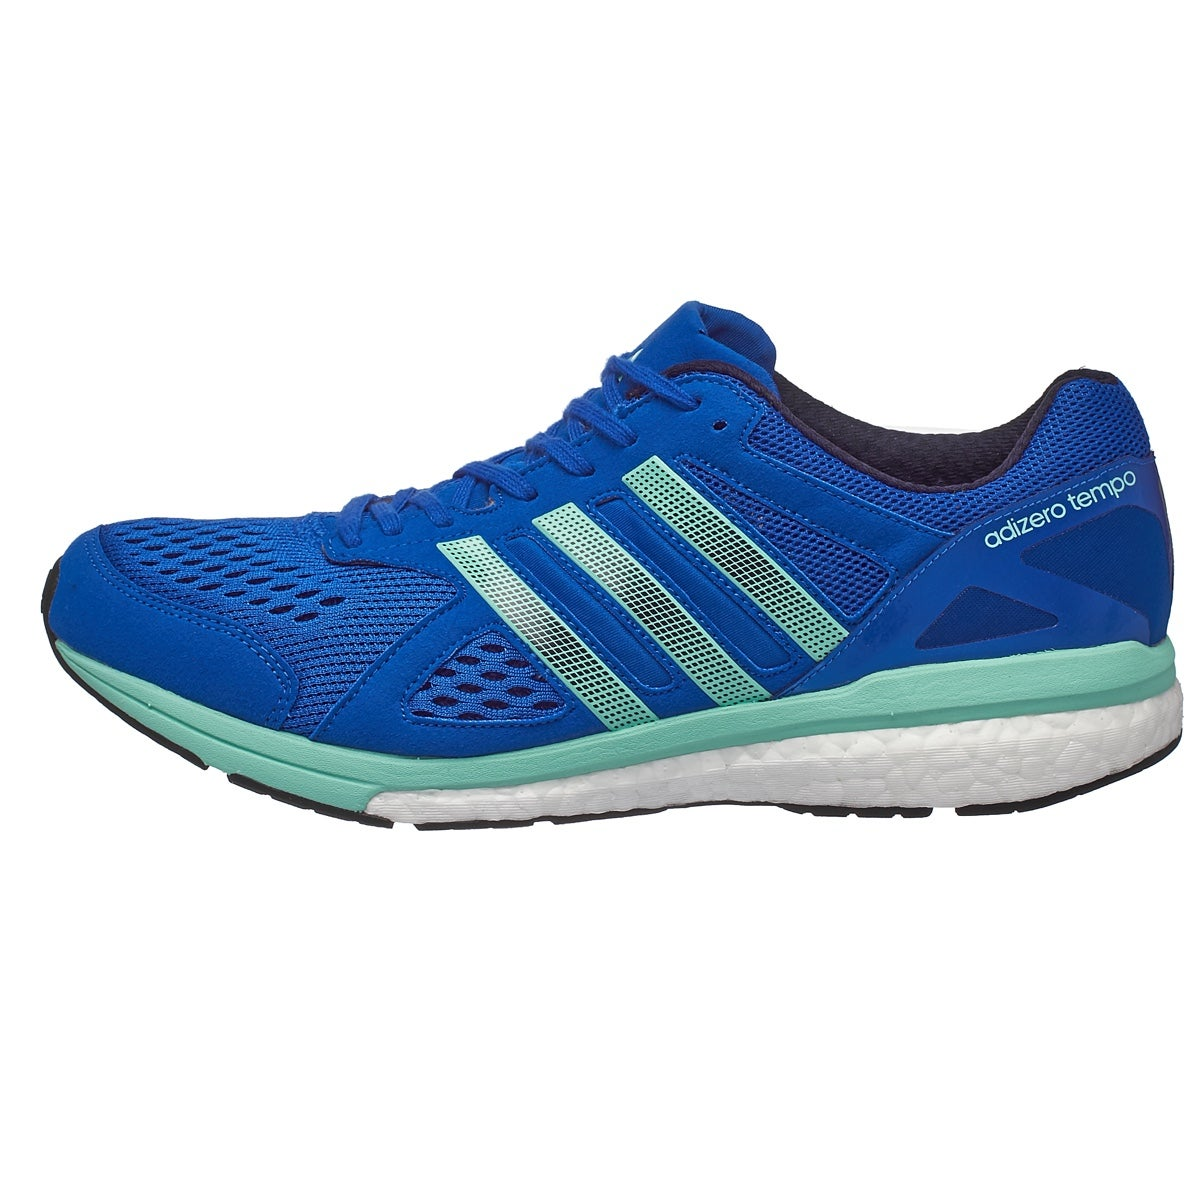 Adidas Running Shoes Europe